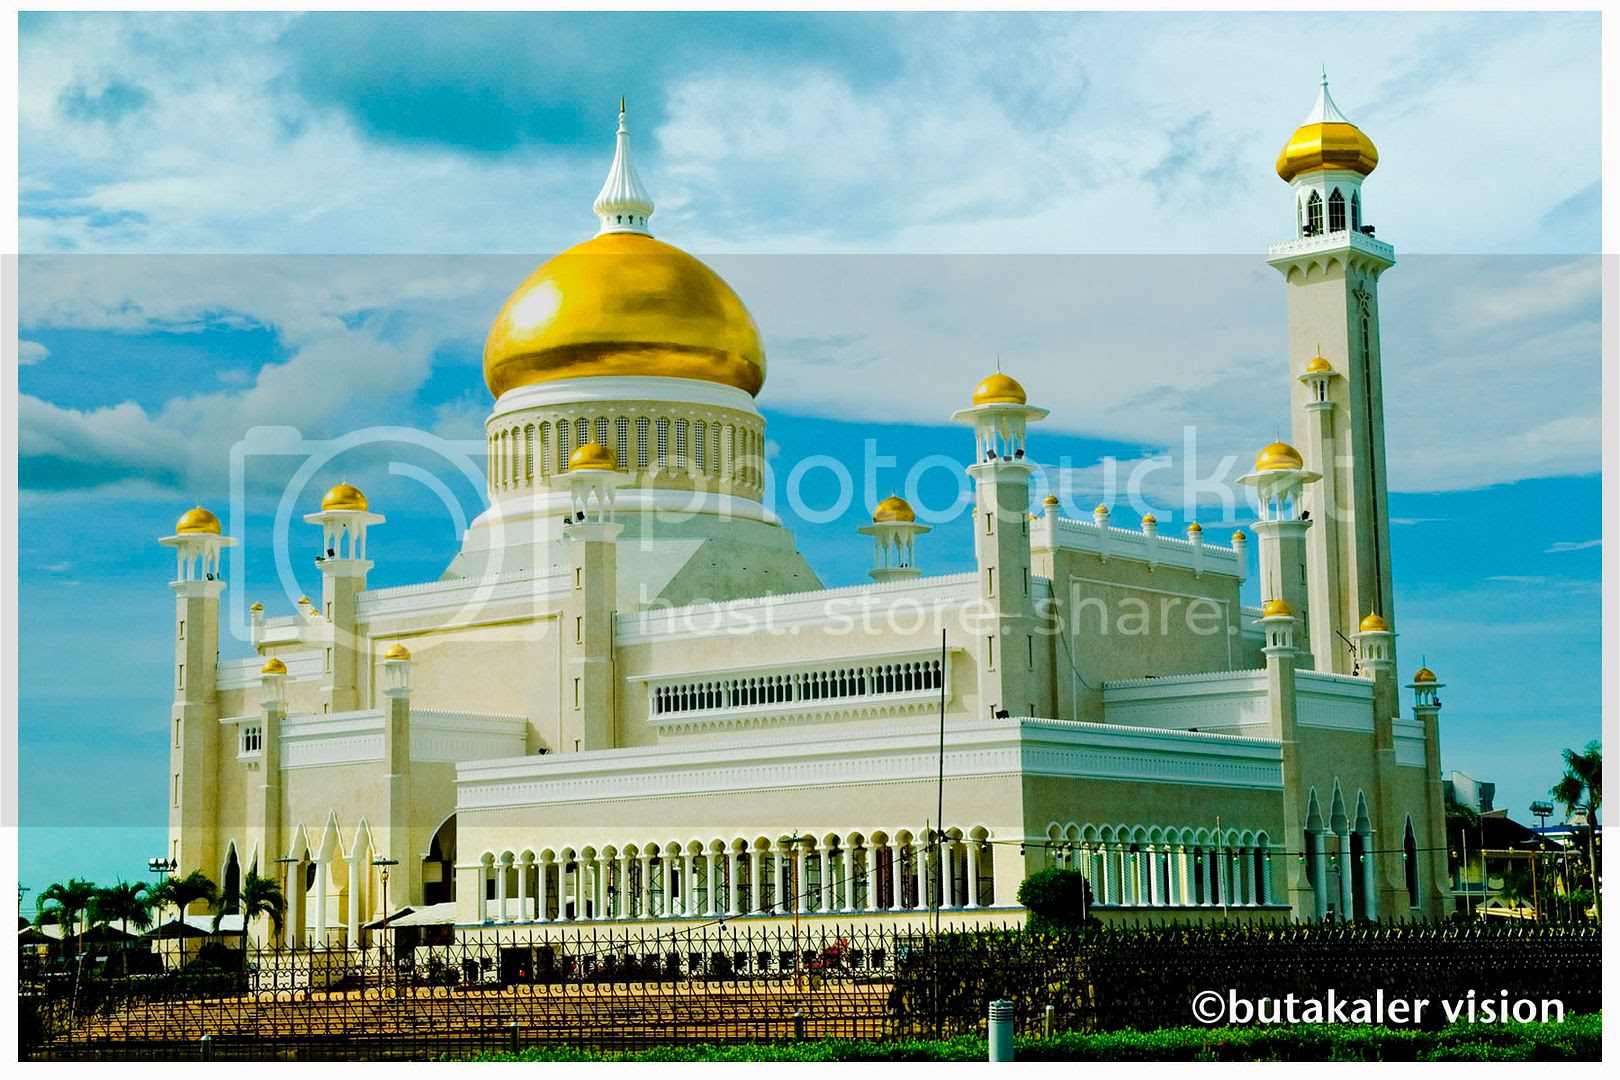 Masjid Sultan Omar Ali Saifuddin Pictures, Images and Photos